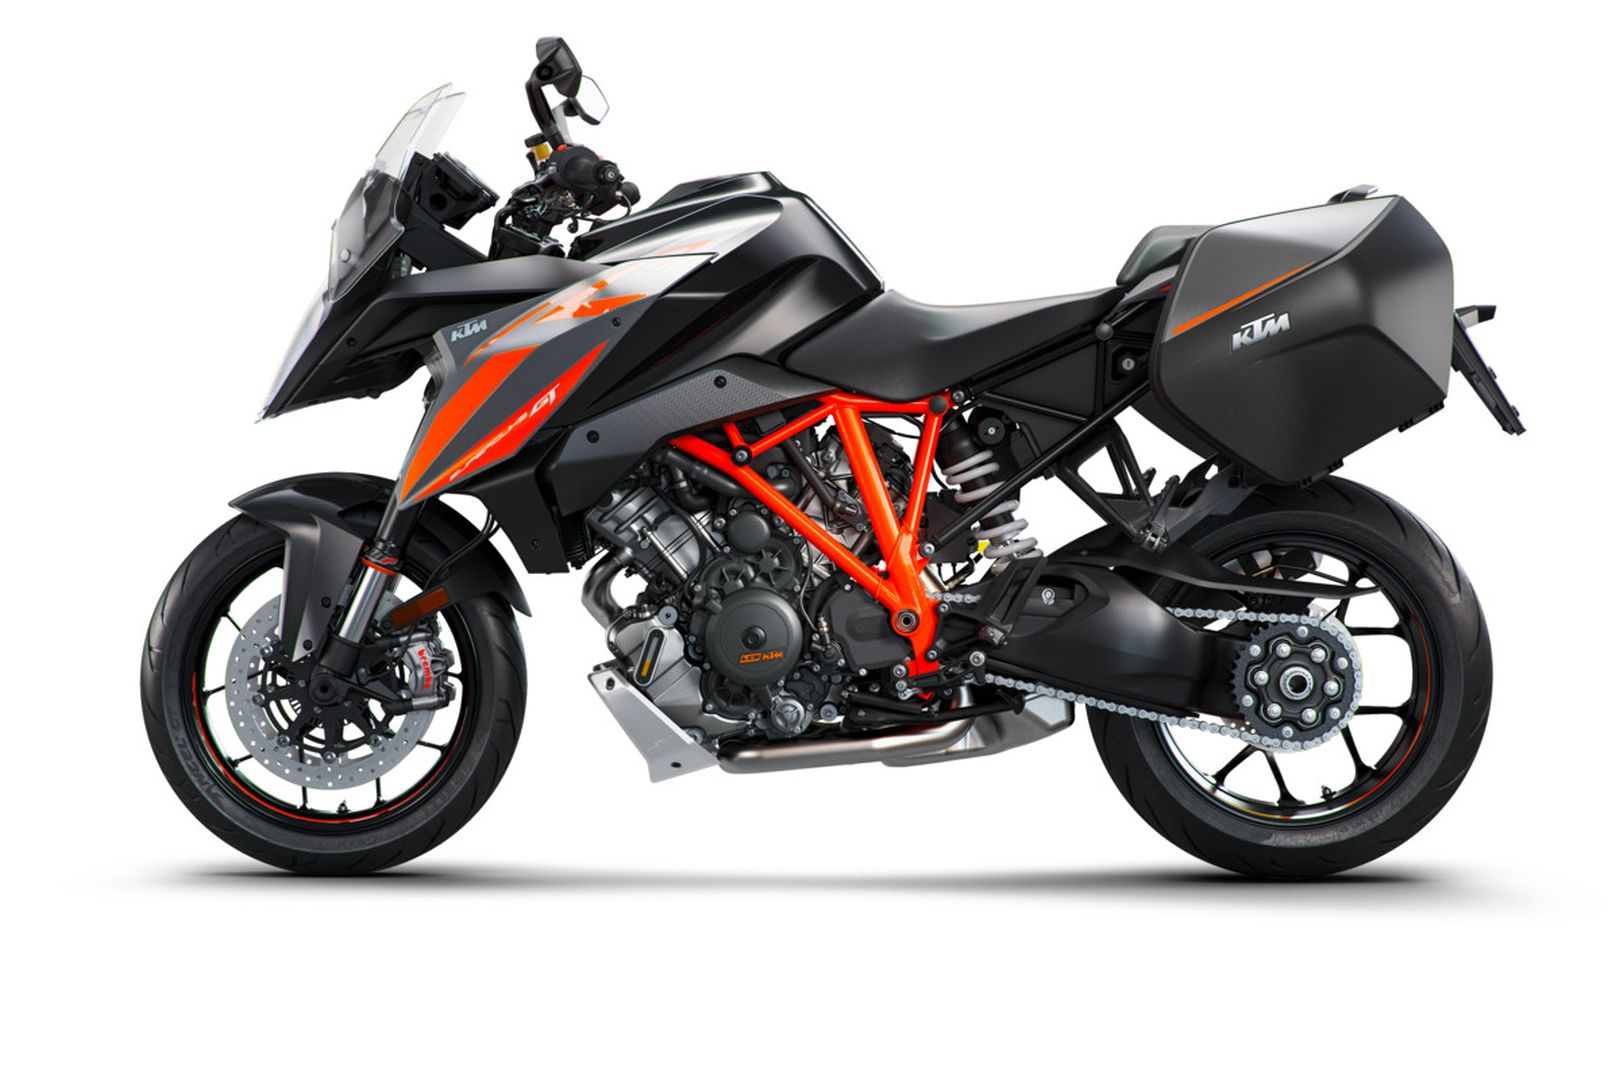 ktm super duke 1290 gt specs 2018 autoevolution. Black Bedroom Furniture Sets. Home Design Ideas